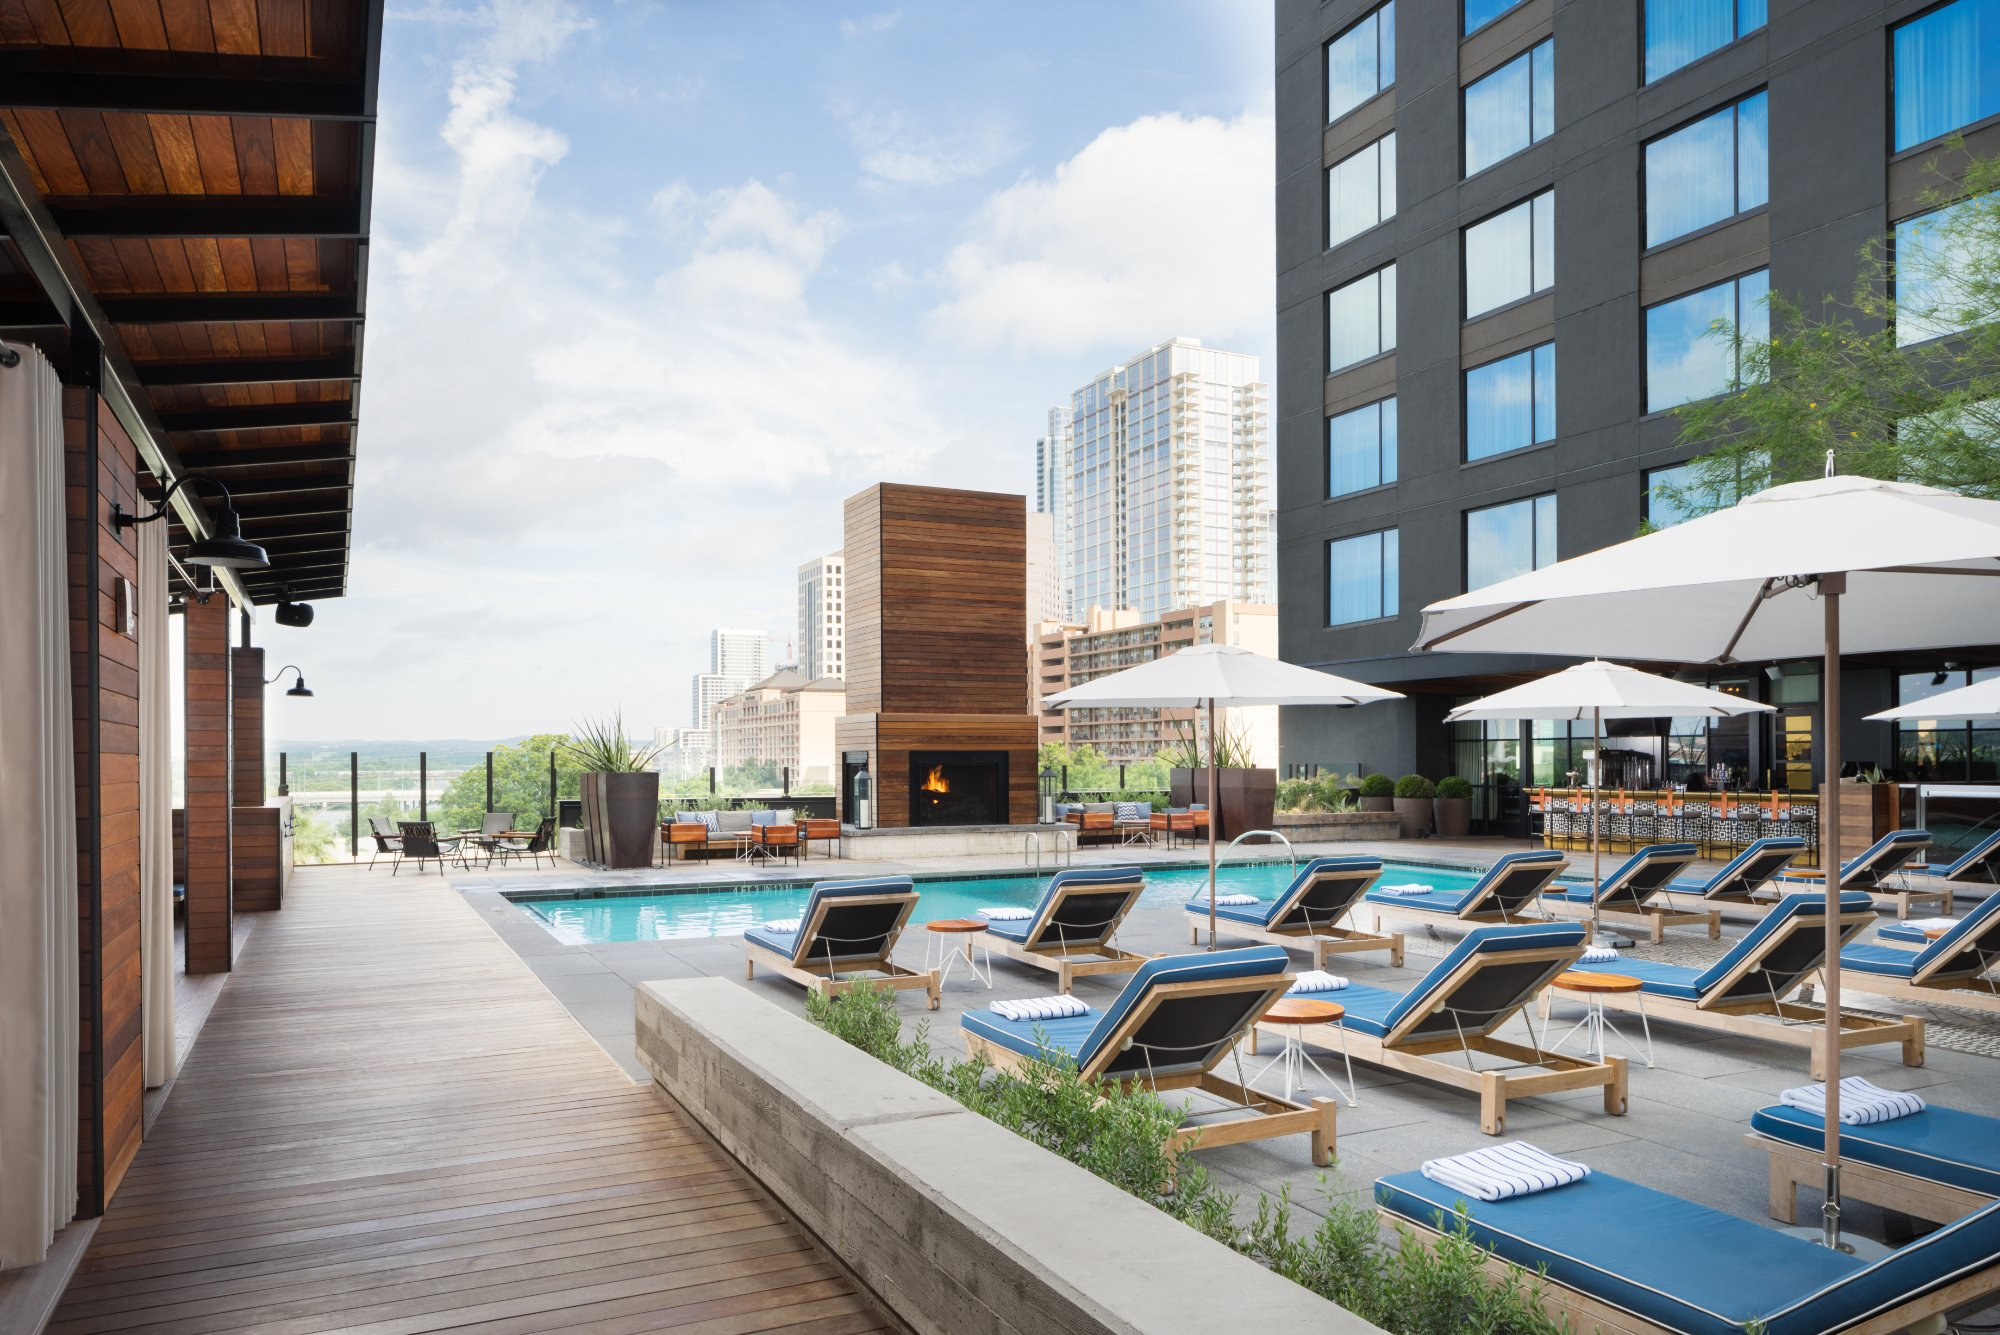 summary of kimpton hotel Release summary kimpton group holding llc, the largest player in the boutique/ lifestyle hotel segment, has announced it has closed its fourth institutional real.